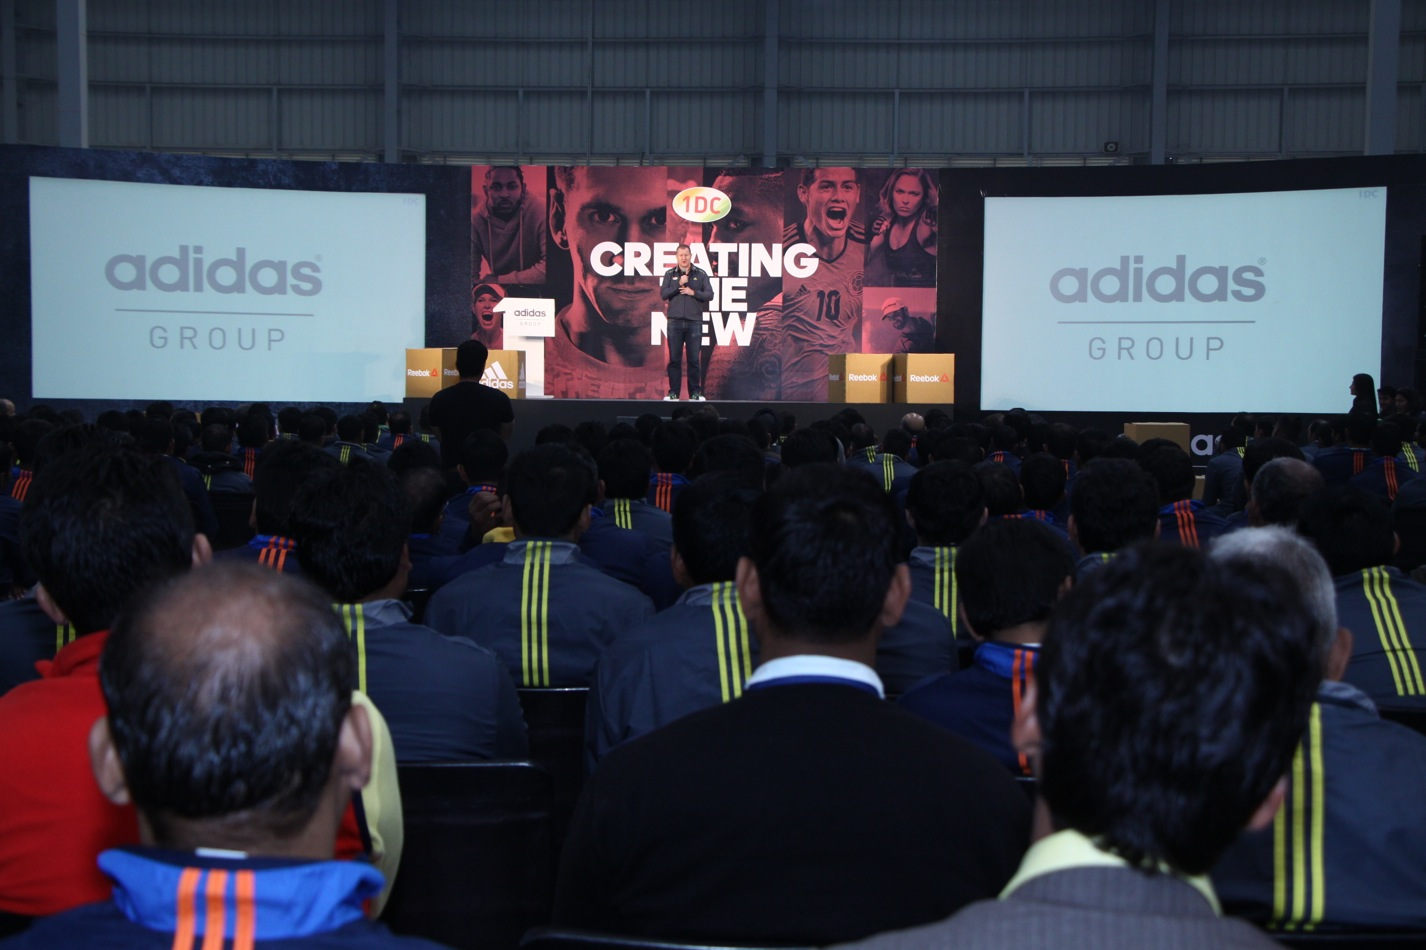 Adidas Group Joins Hands With Toast Events For The Grand Launch Of Their Warehouse In Pataudi